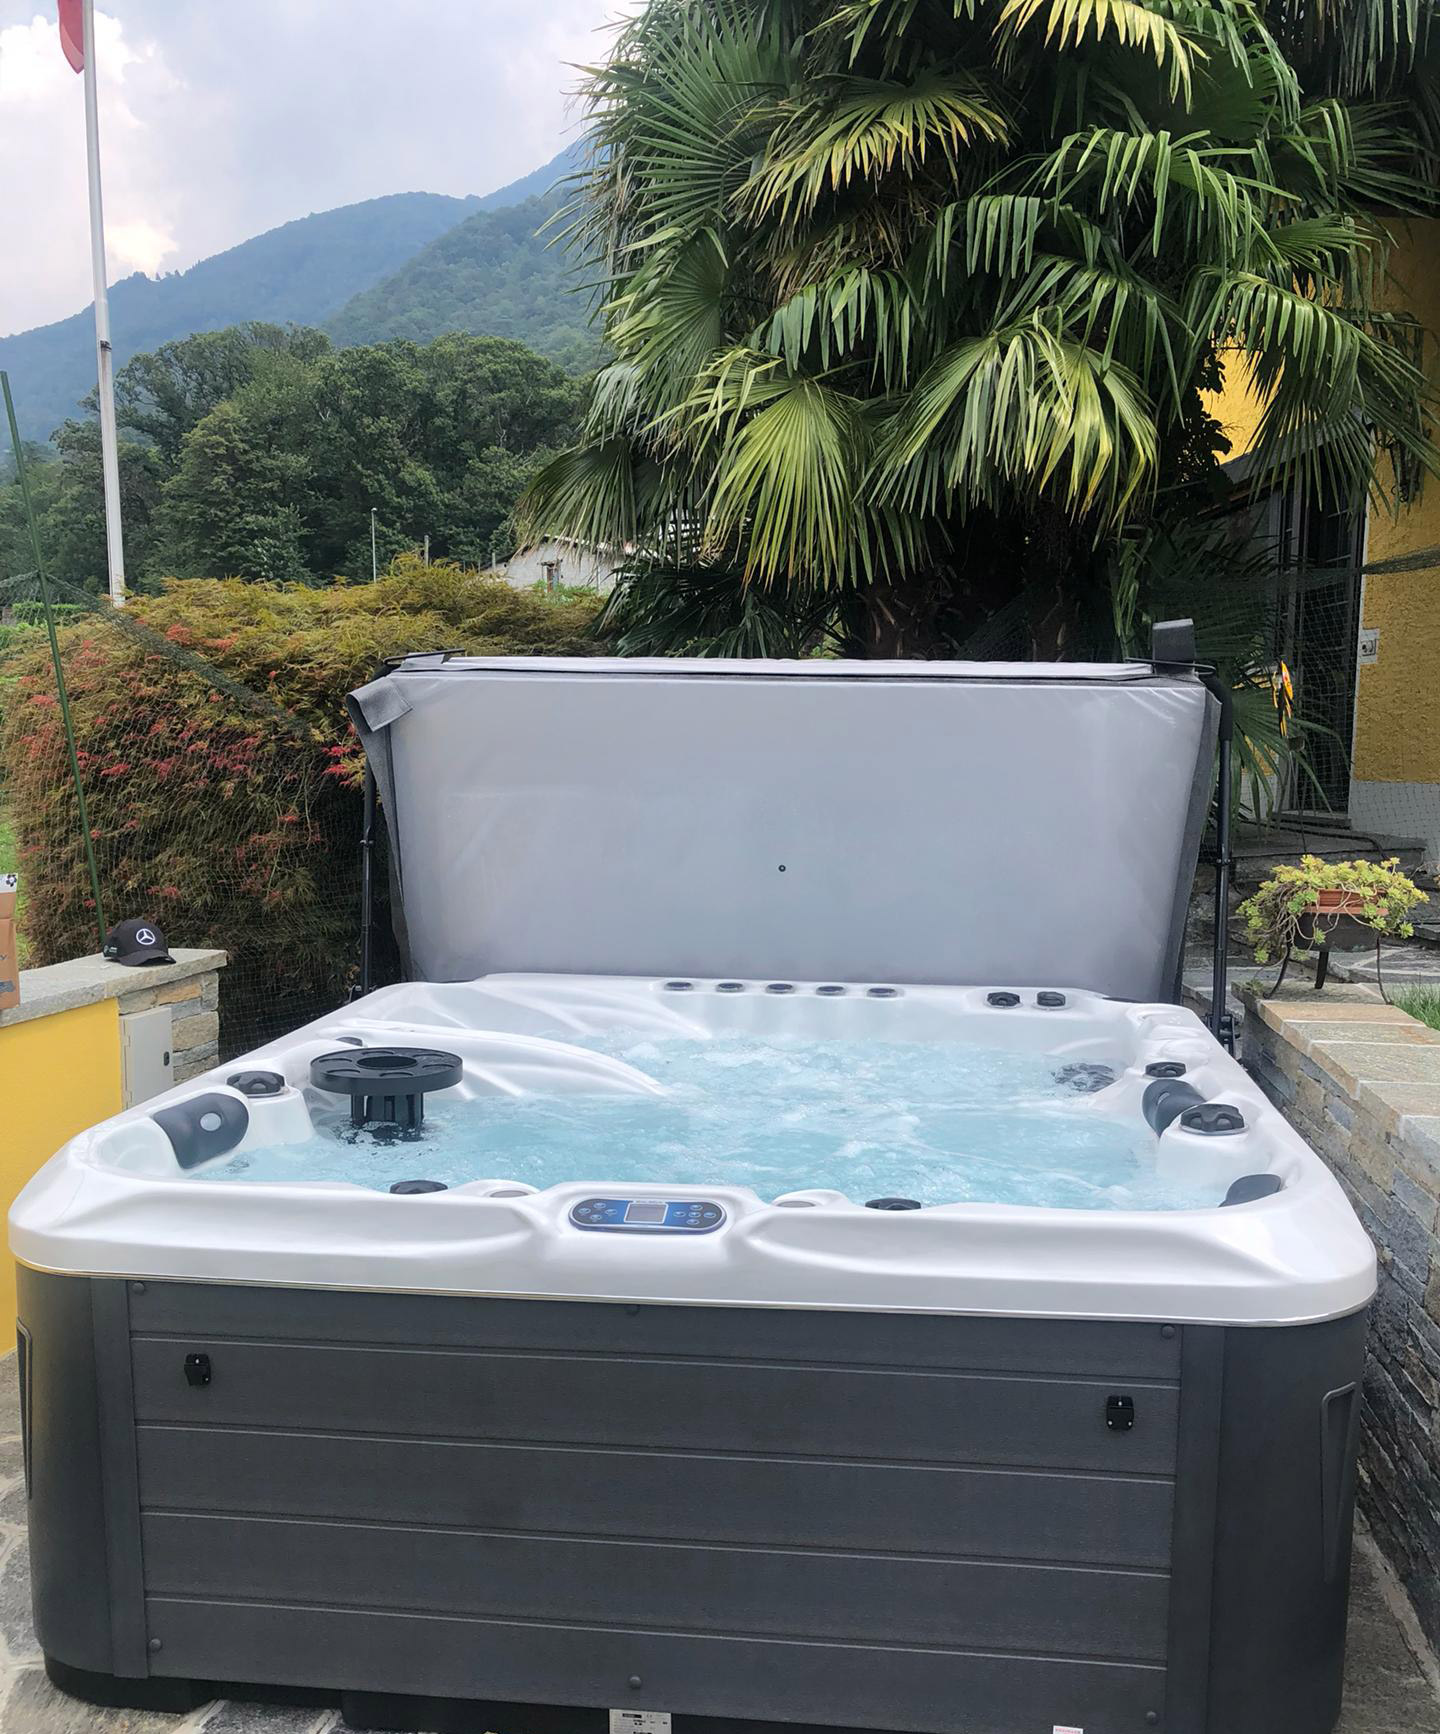 Whirlpool-Referenz in Tessin mit Bergblick